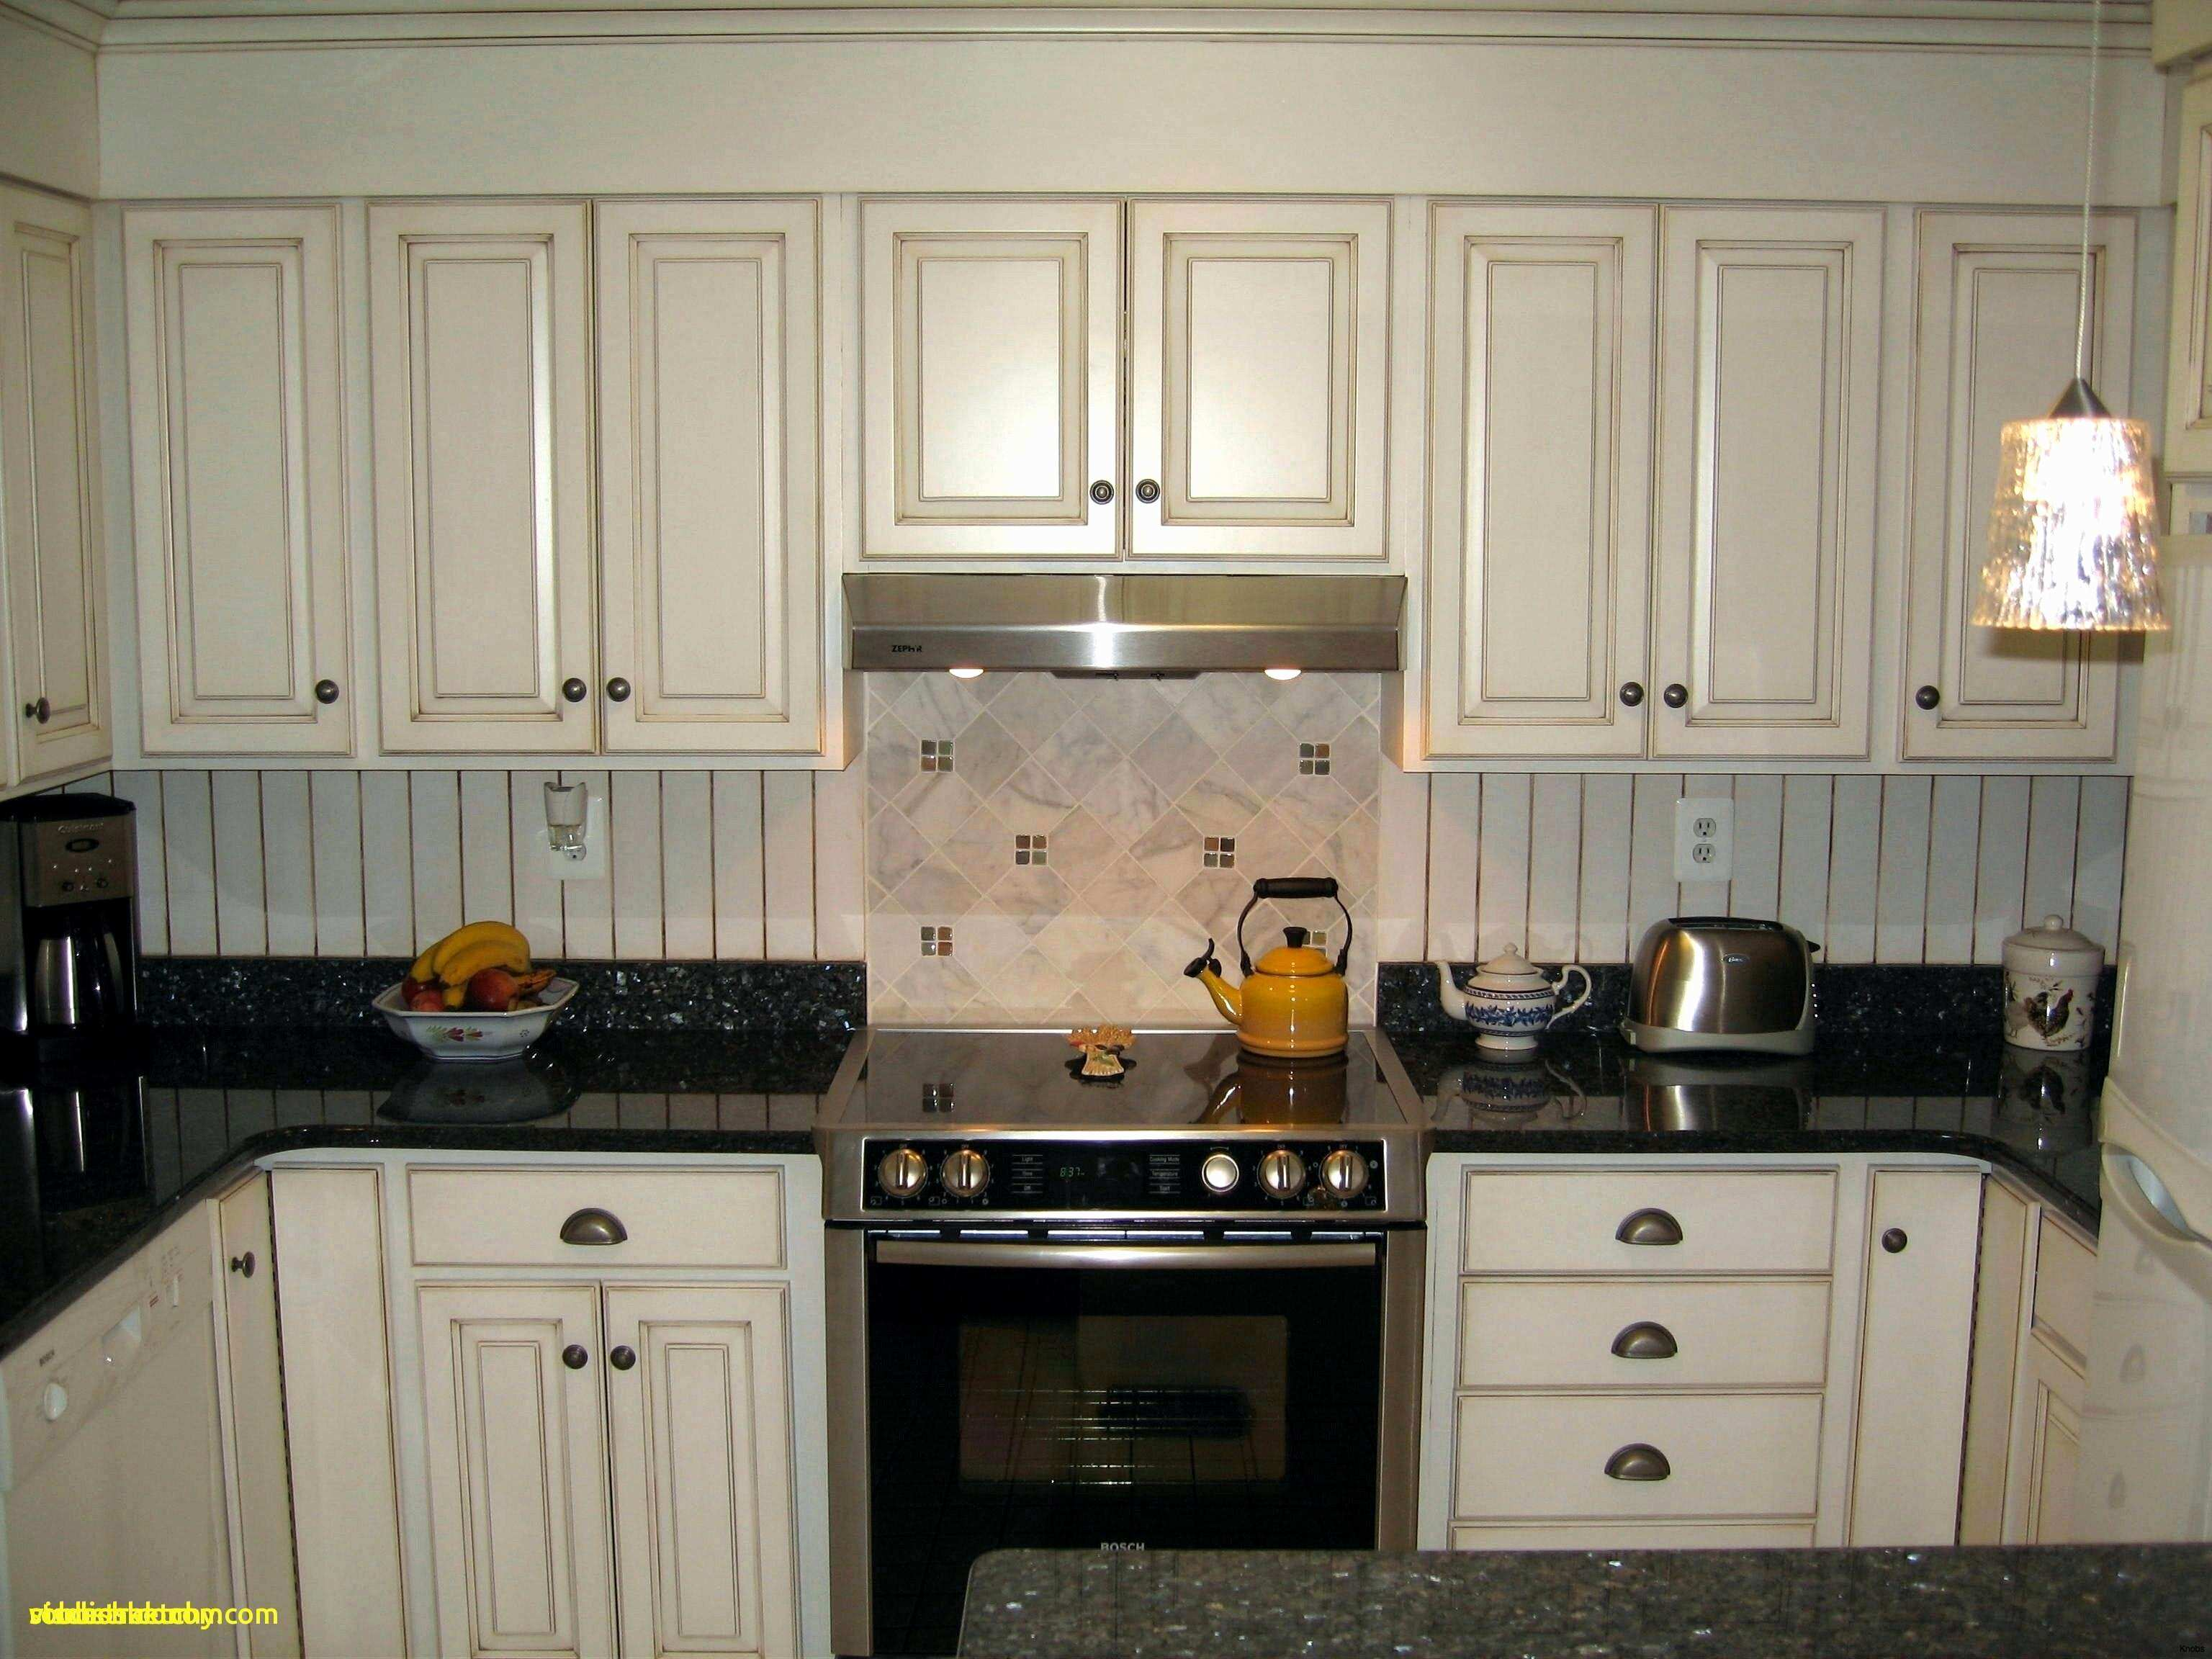 50 Fresh How to Adjust Cabinet Door Hinges Step by Step 50